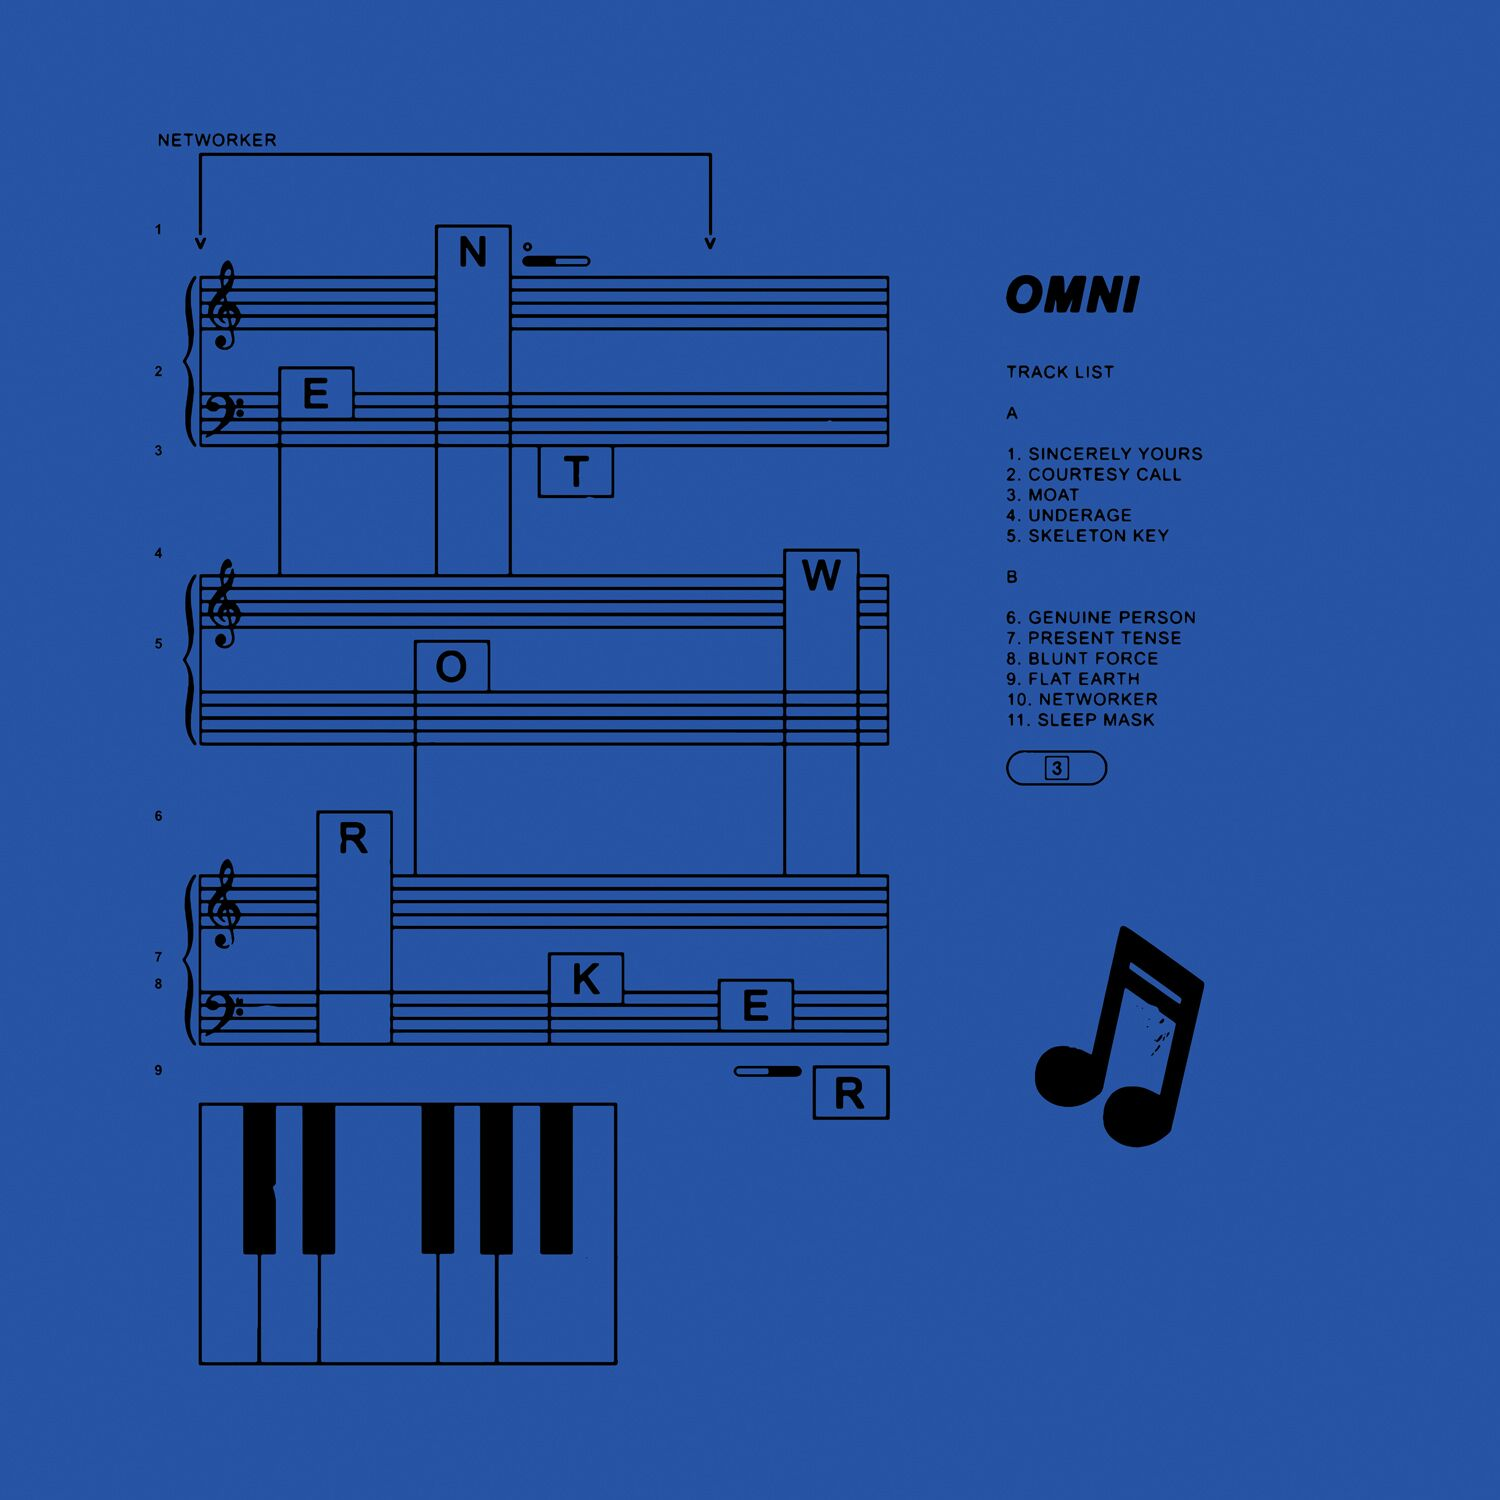 Networker by Omni, album review by Adam Fink.